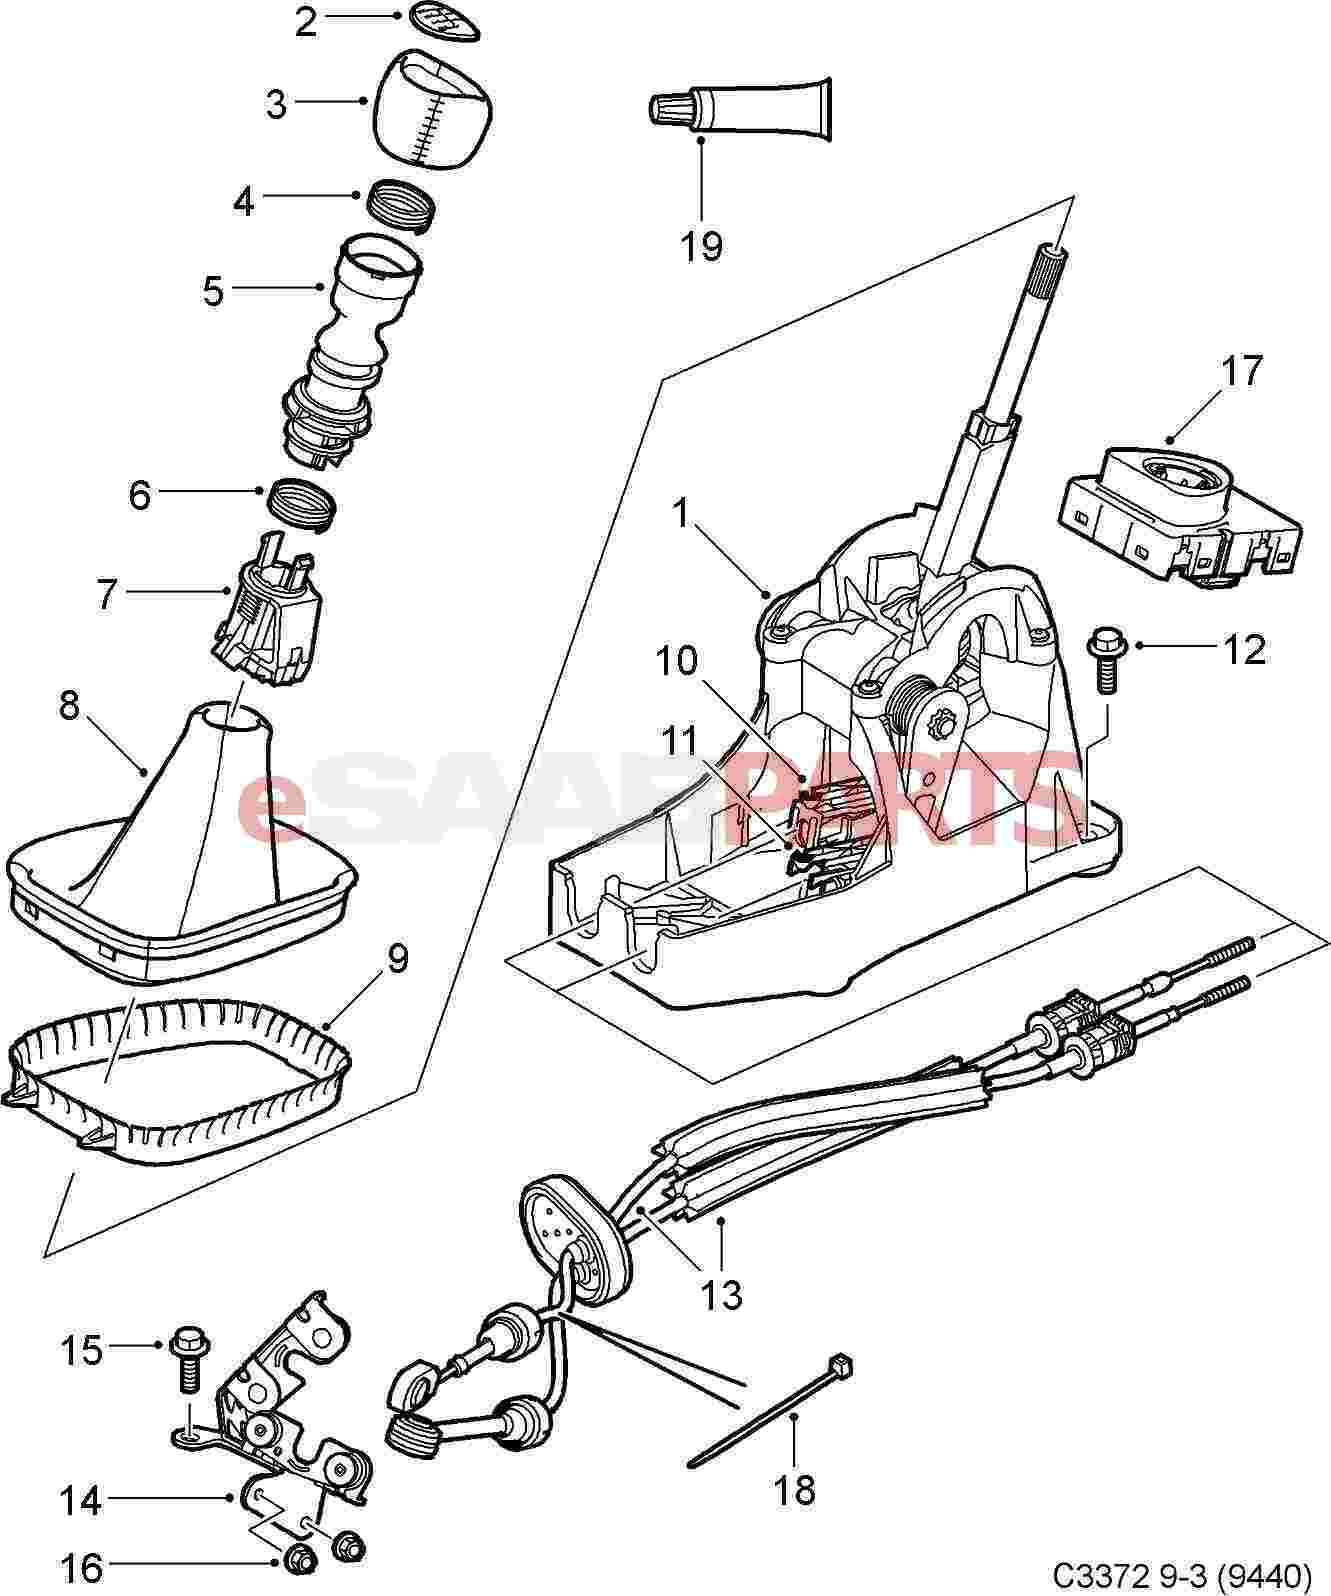 Mitsubishi 3000gt Parts Diagram on 5h5hx 90 f150 months ago wouldn t start